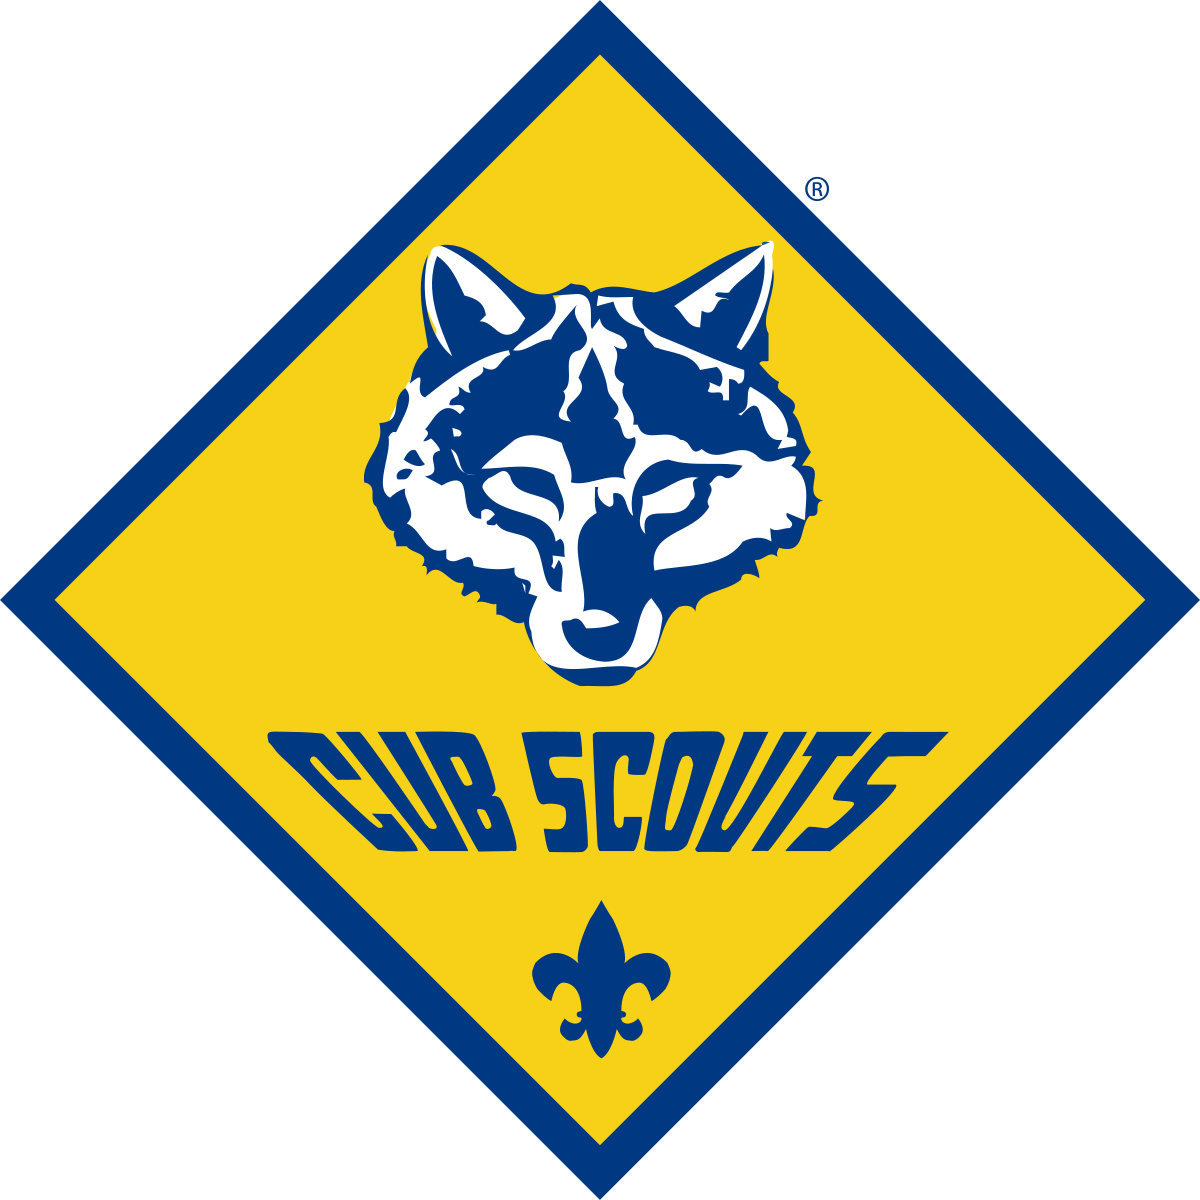 Boy scout star rank clipart png download Cub Scouting (Boy Scouts of America) - Wikipedia png download